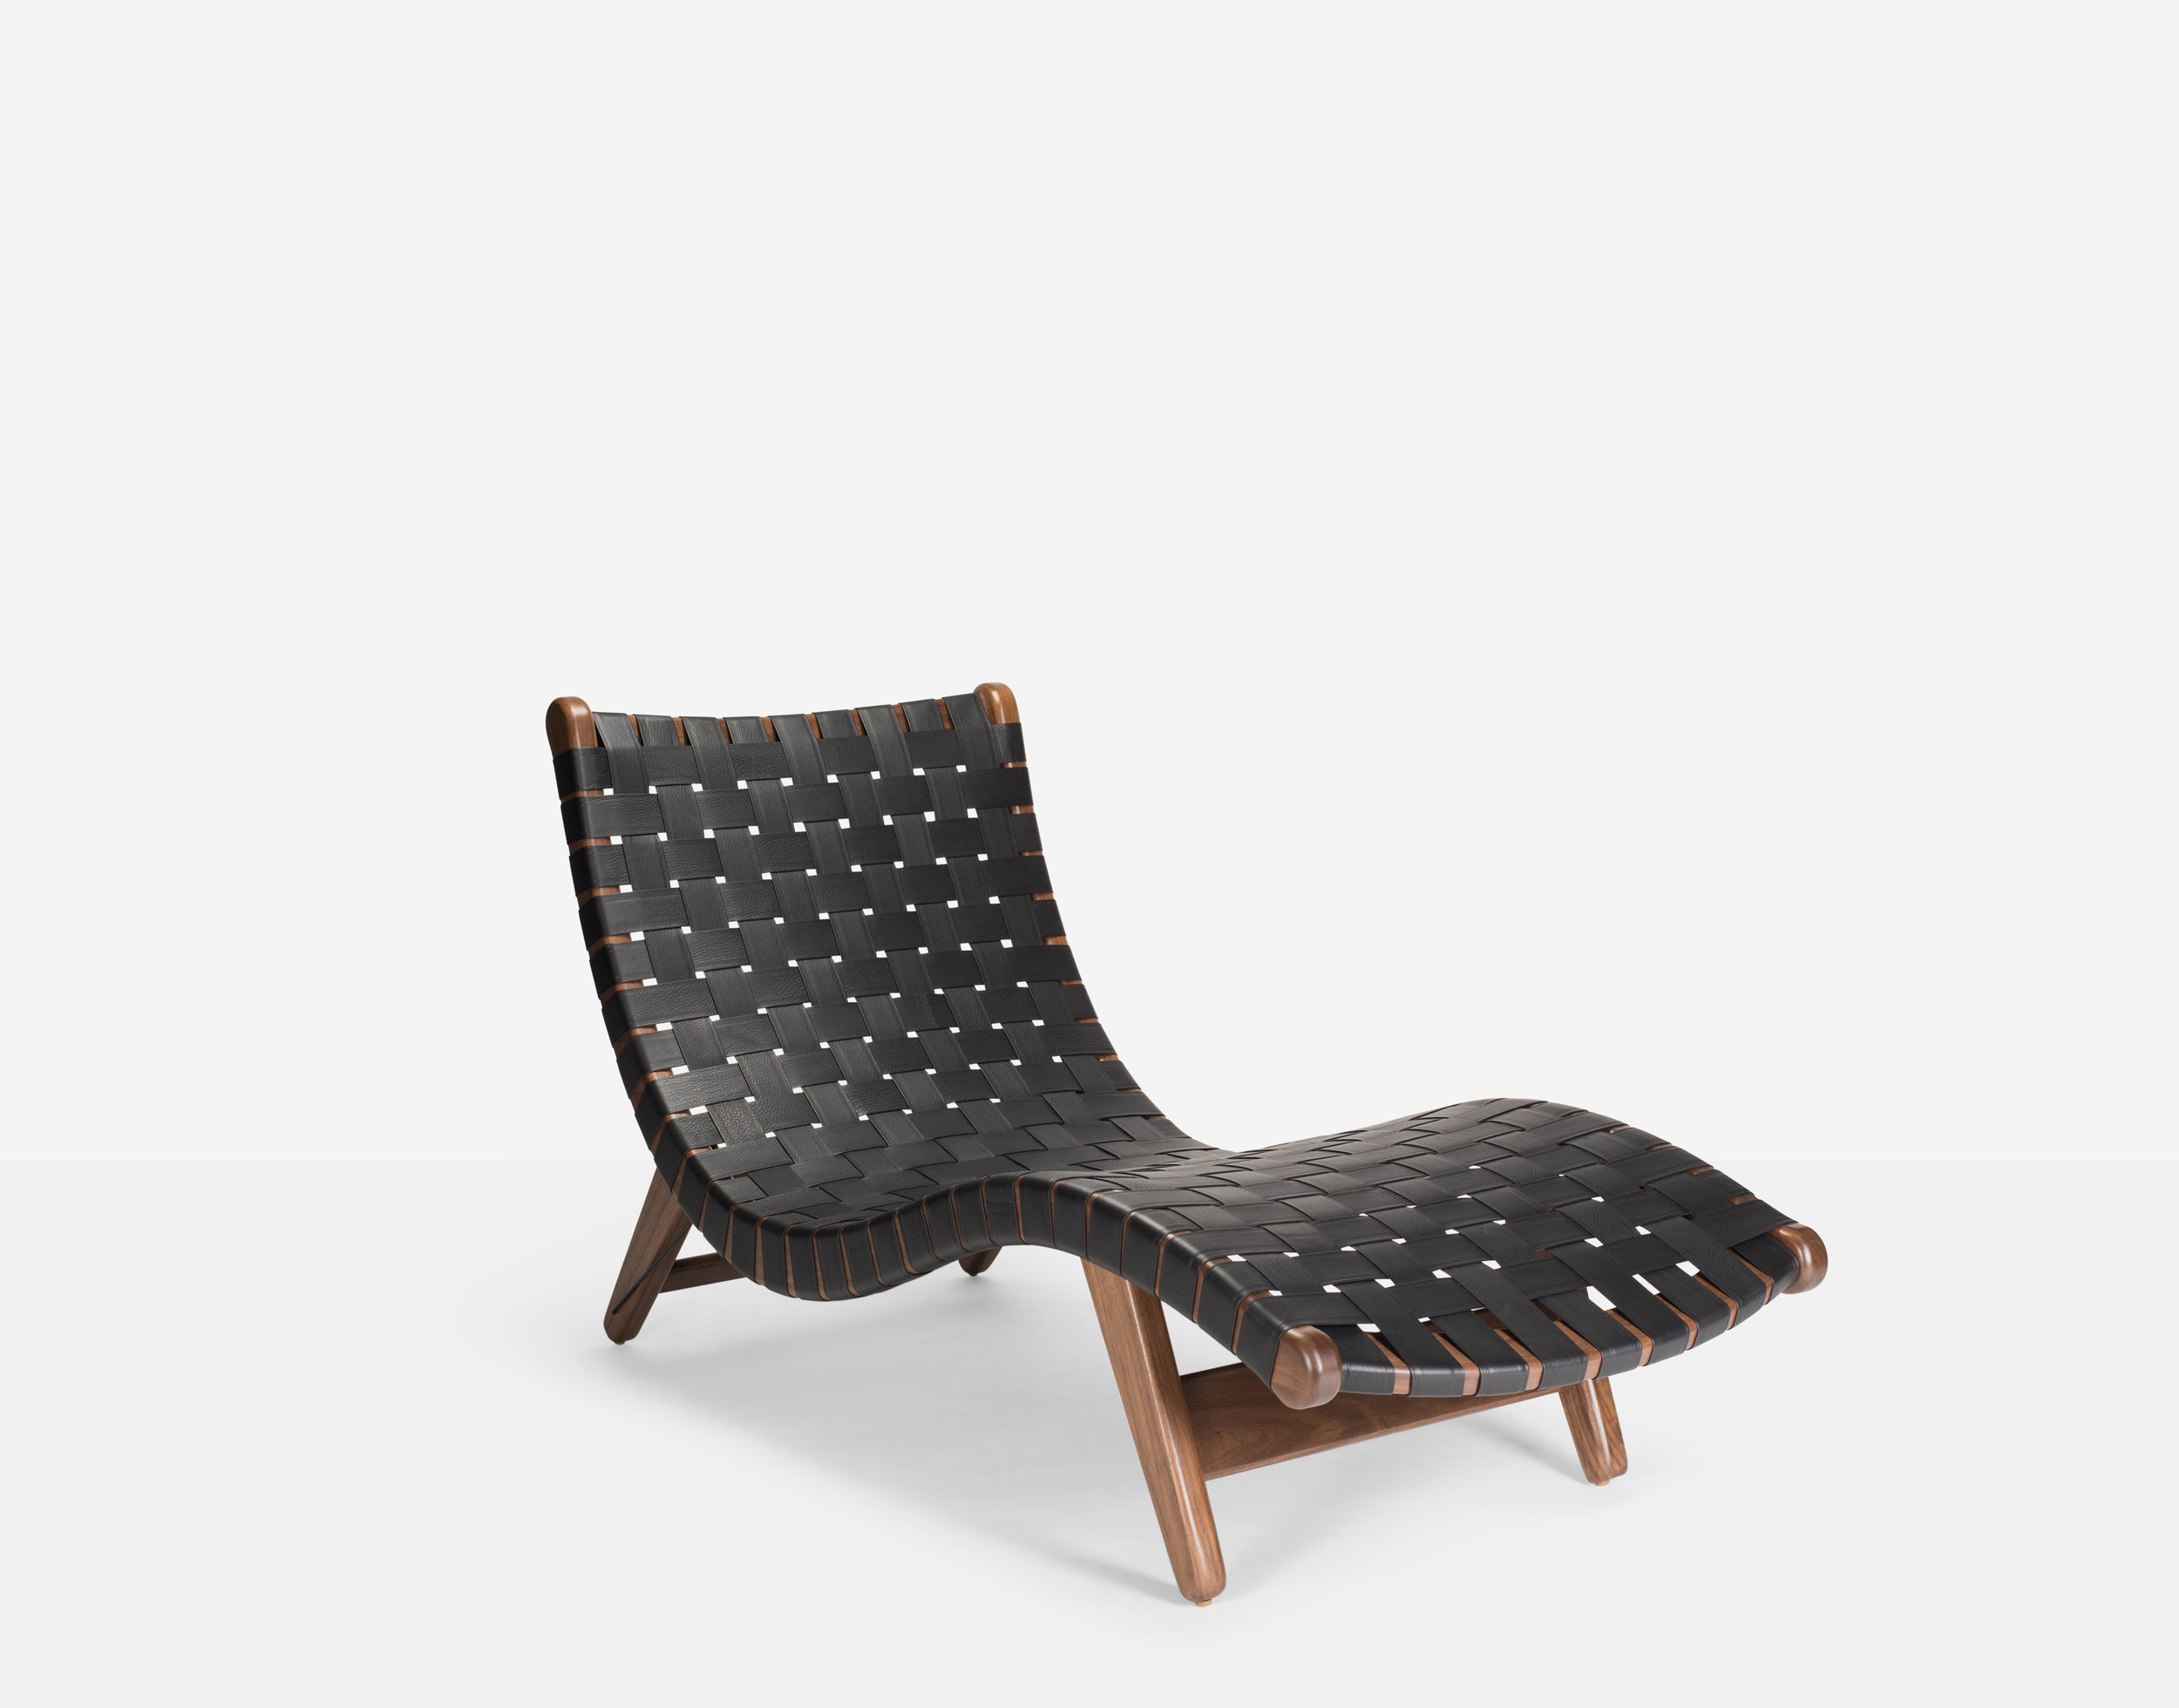 Luteca_MvB_Alacran-Chaise_Black-Leather_Walnut_FP-W1.jpg